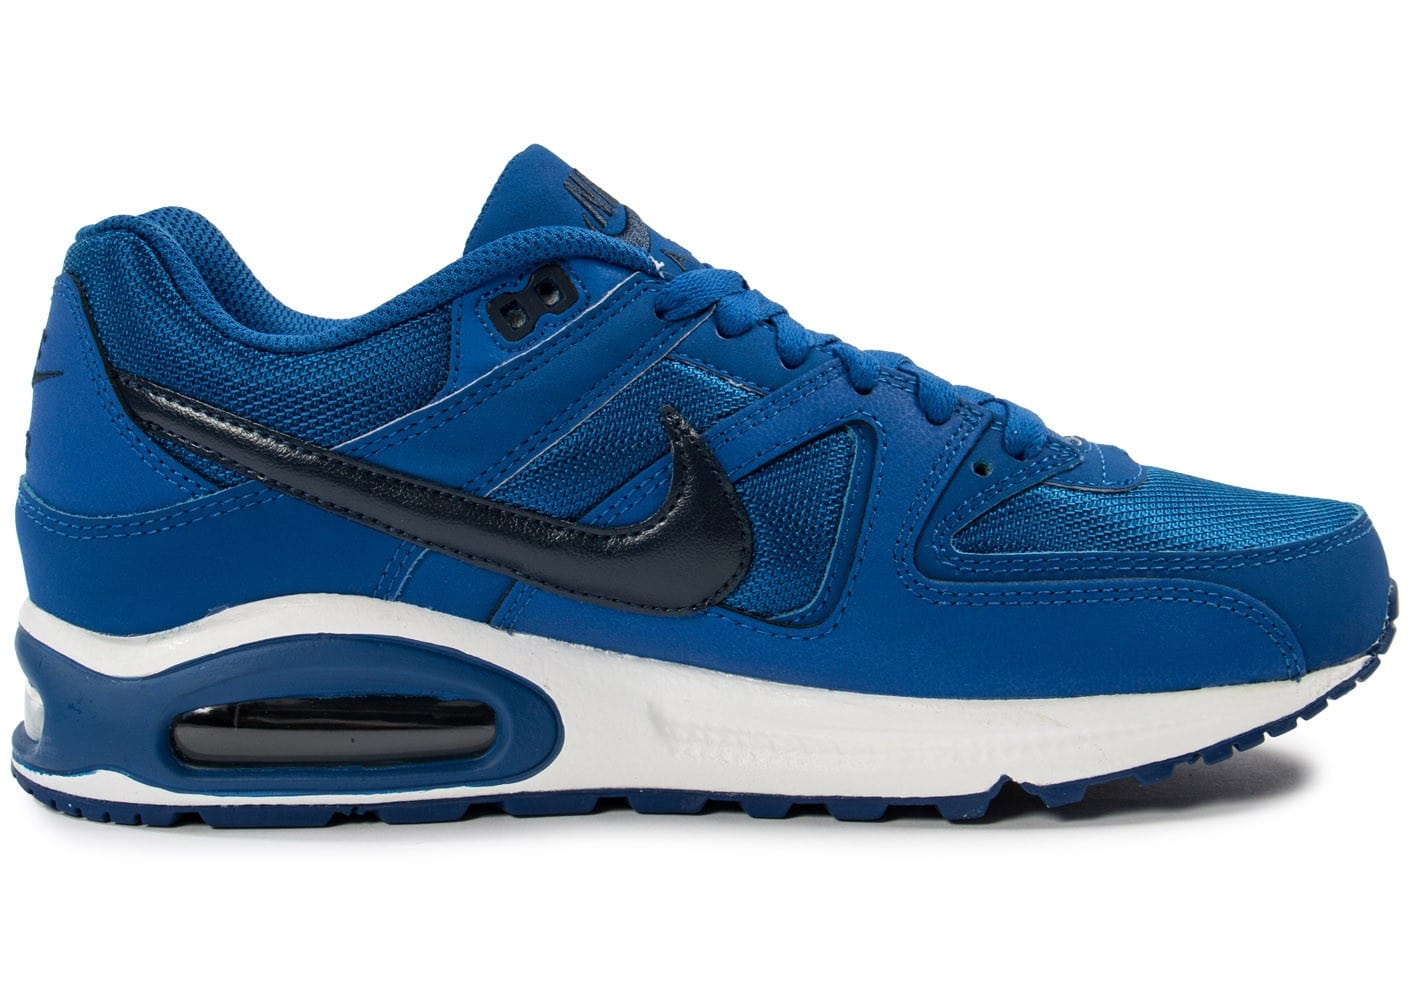 soldes nike air max command bleue chaussures homme chausport. Black Bedroom Furniture Sets. Home Design Ideas